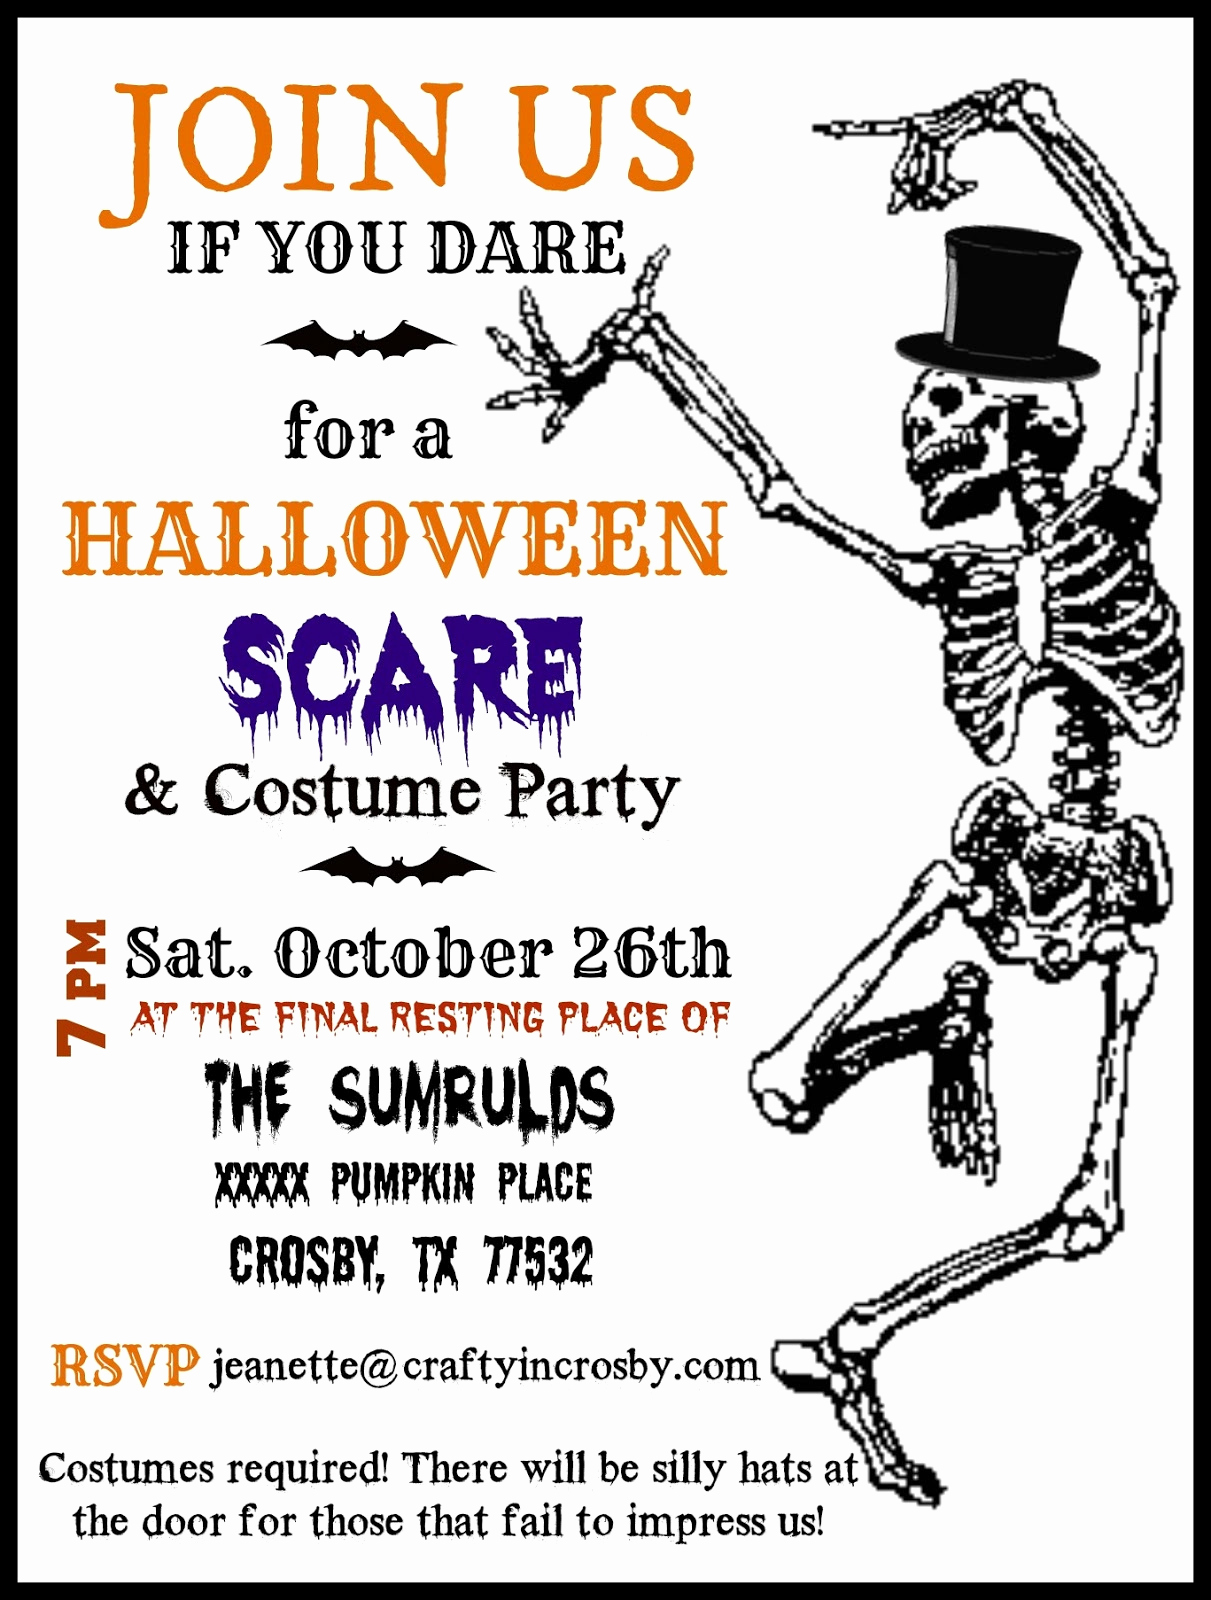 Free Halloween Party Invitation Templates Awesome Crafty In Crosby Halloween Party Invitations with Template